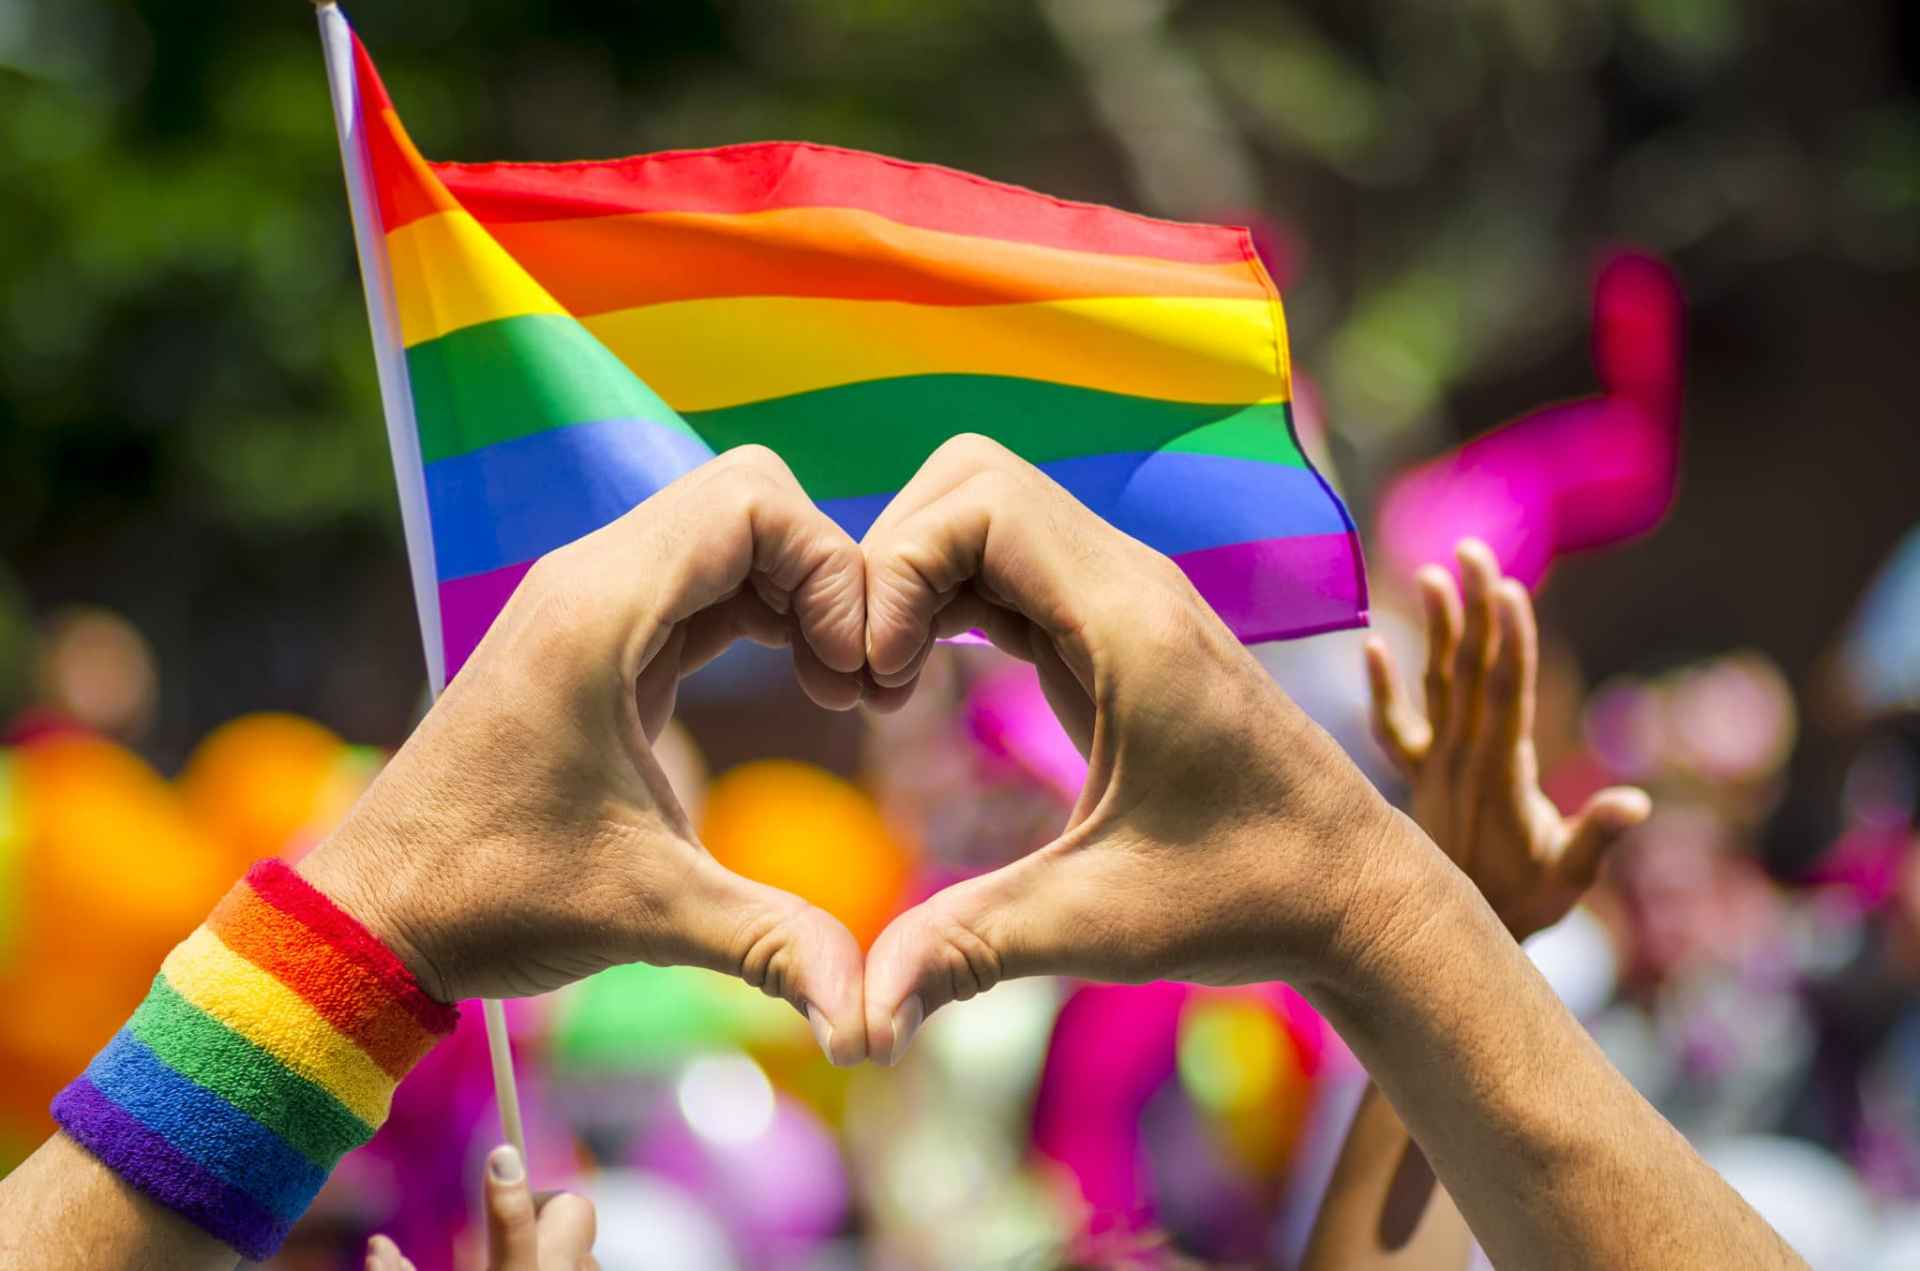 NYC Neighborhoods With A Rich LGBT History